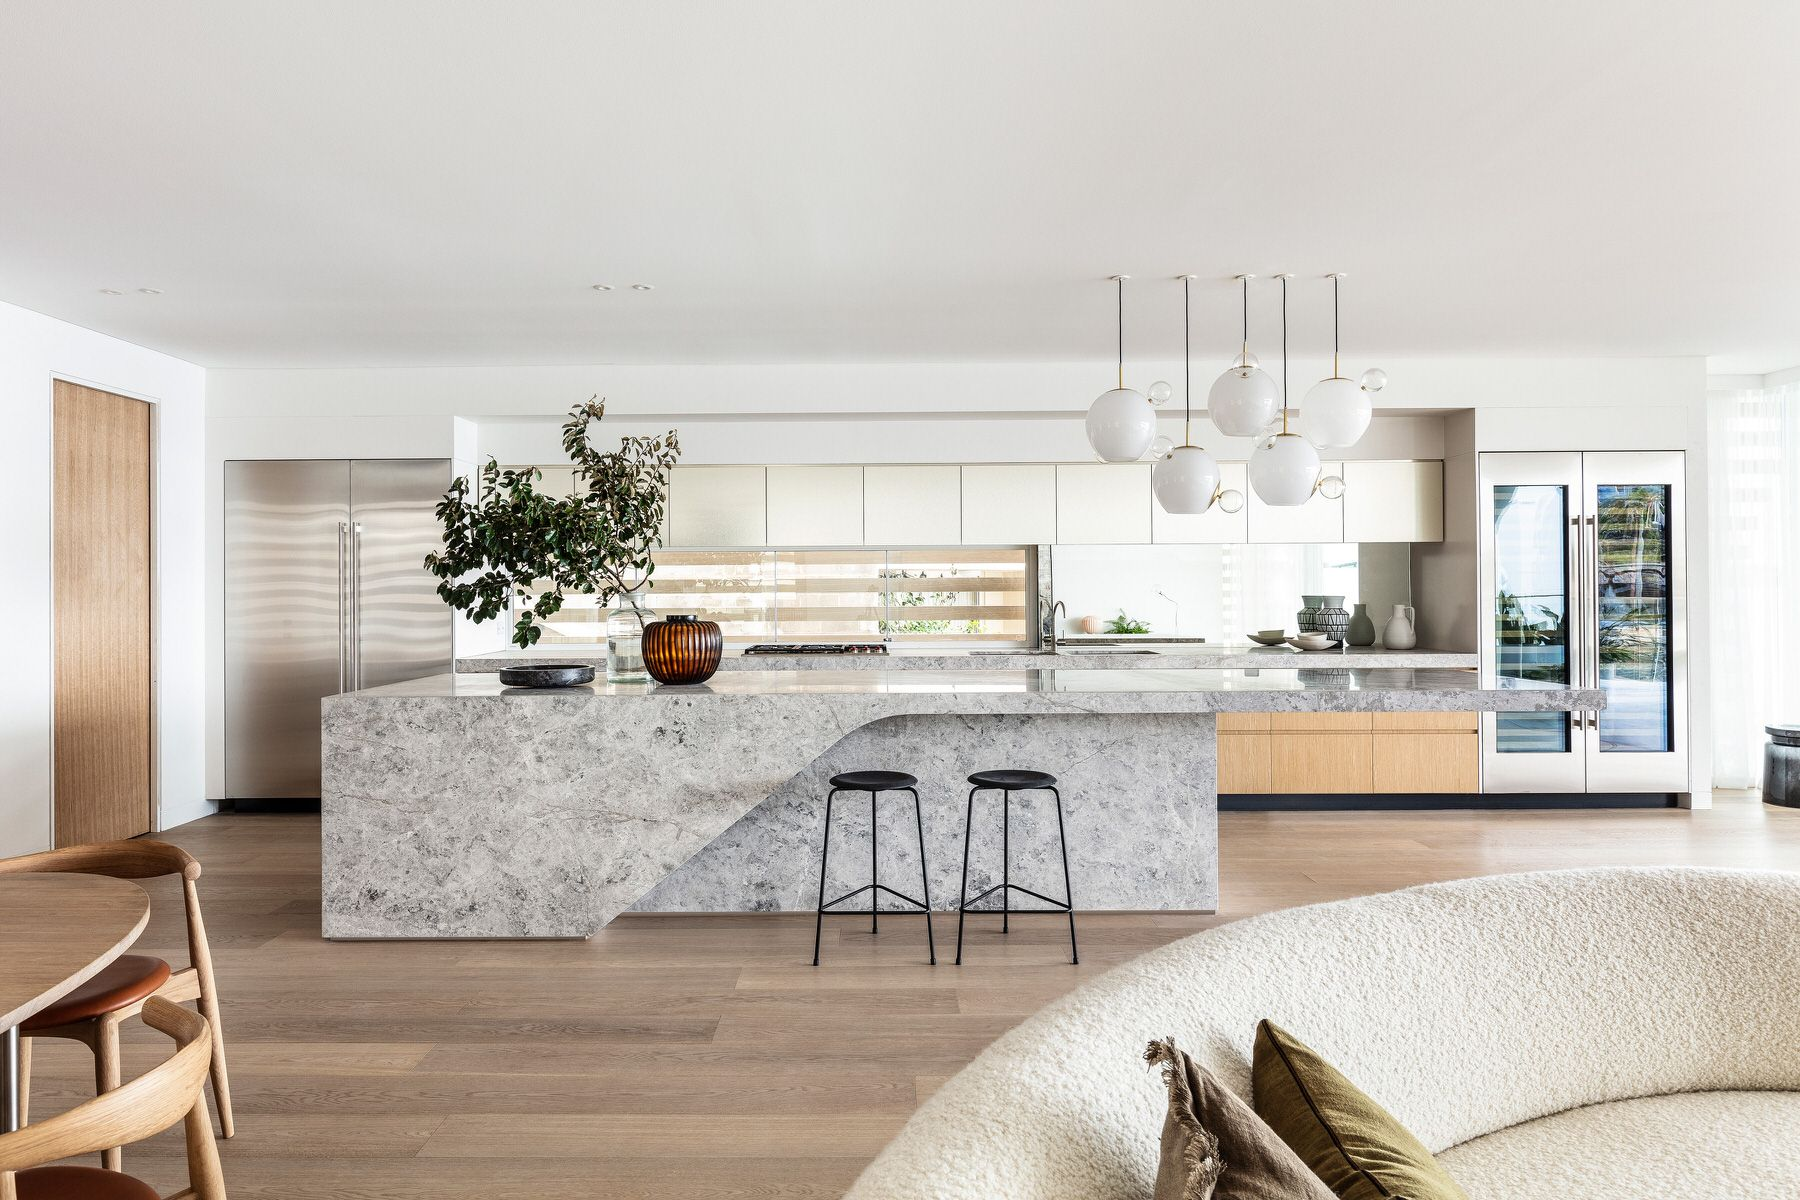 Bower Manly Apartments By Mim Design Koichi Takada Yellowtrace In 2020 Mim Design Stone Kitchen Island Kitchen Interior